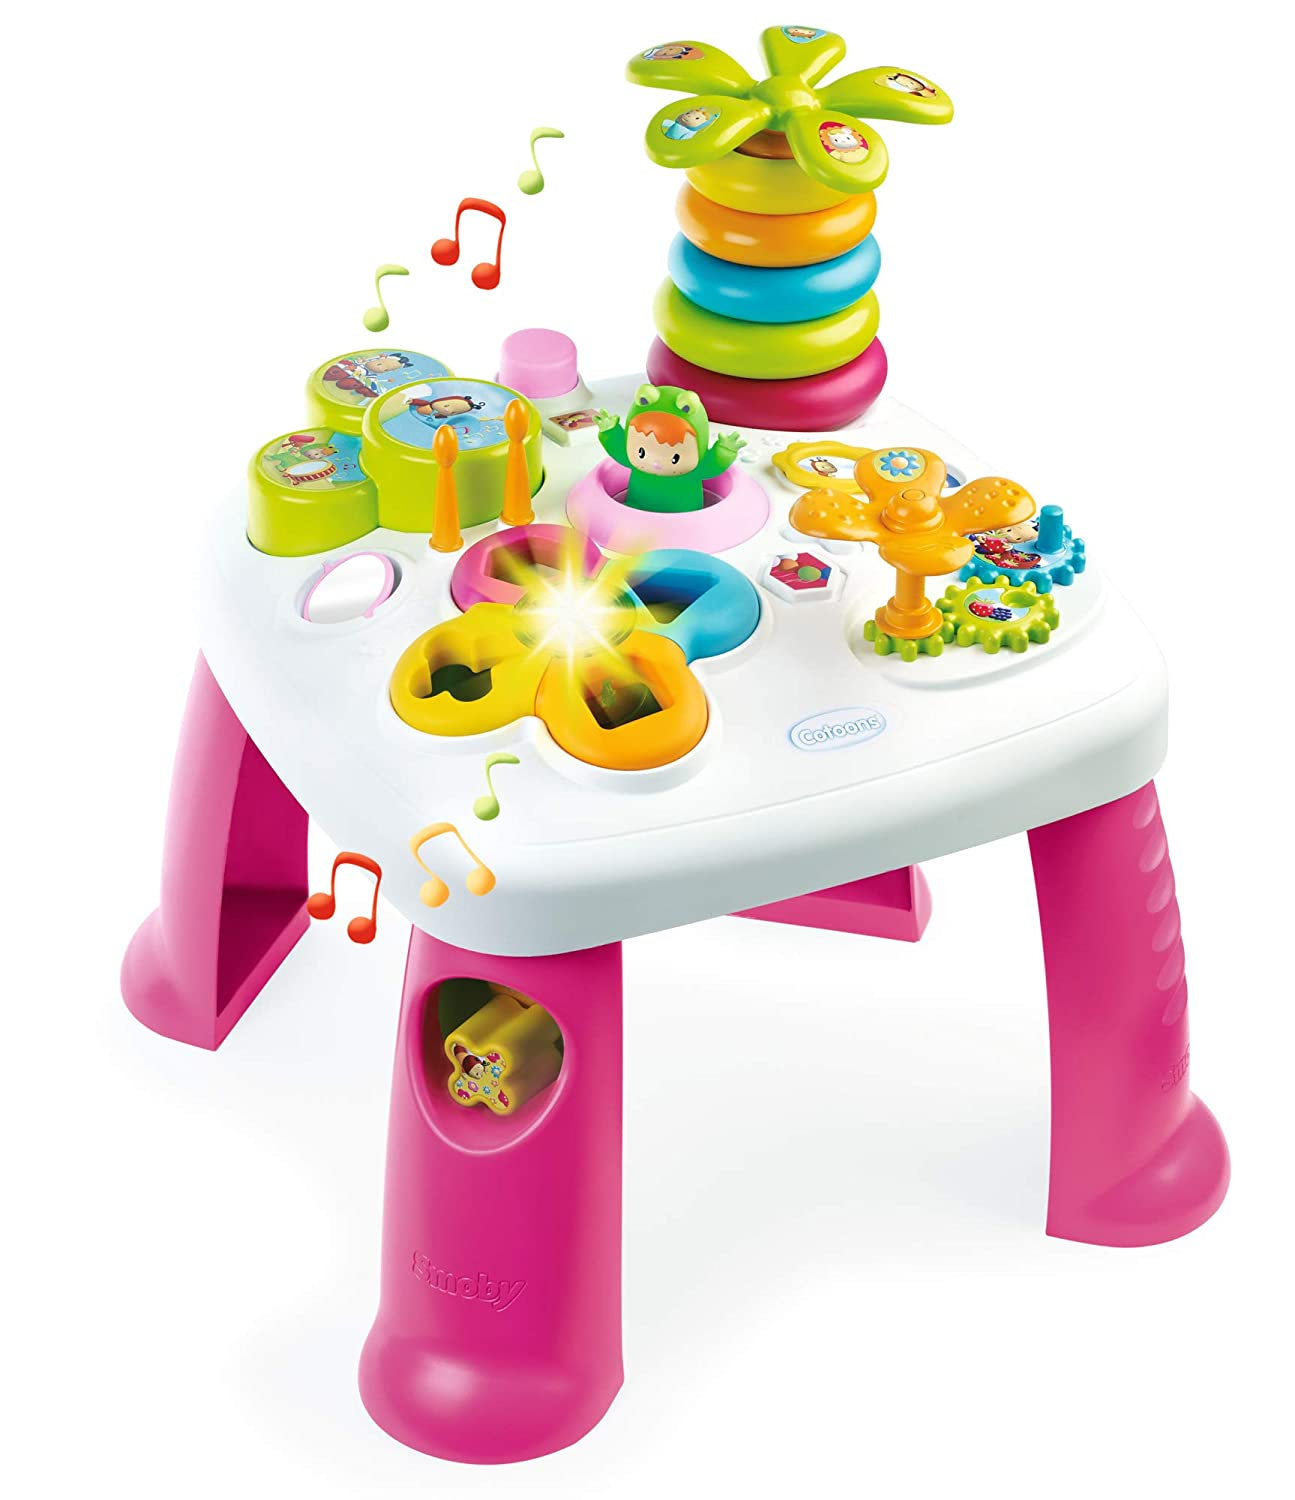 Smoby 211170 Cotoons Activity Table Pink Amazon Co Uk Toys Games